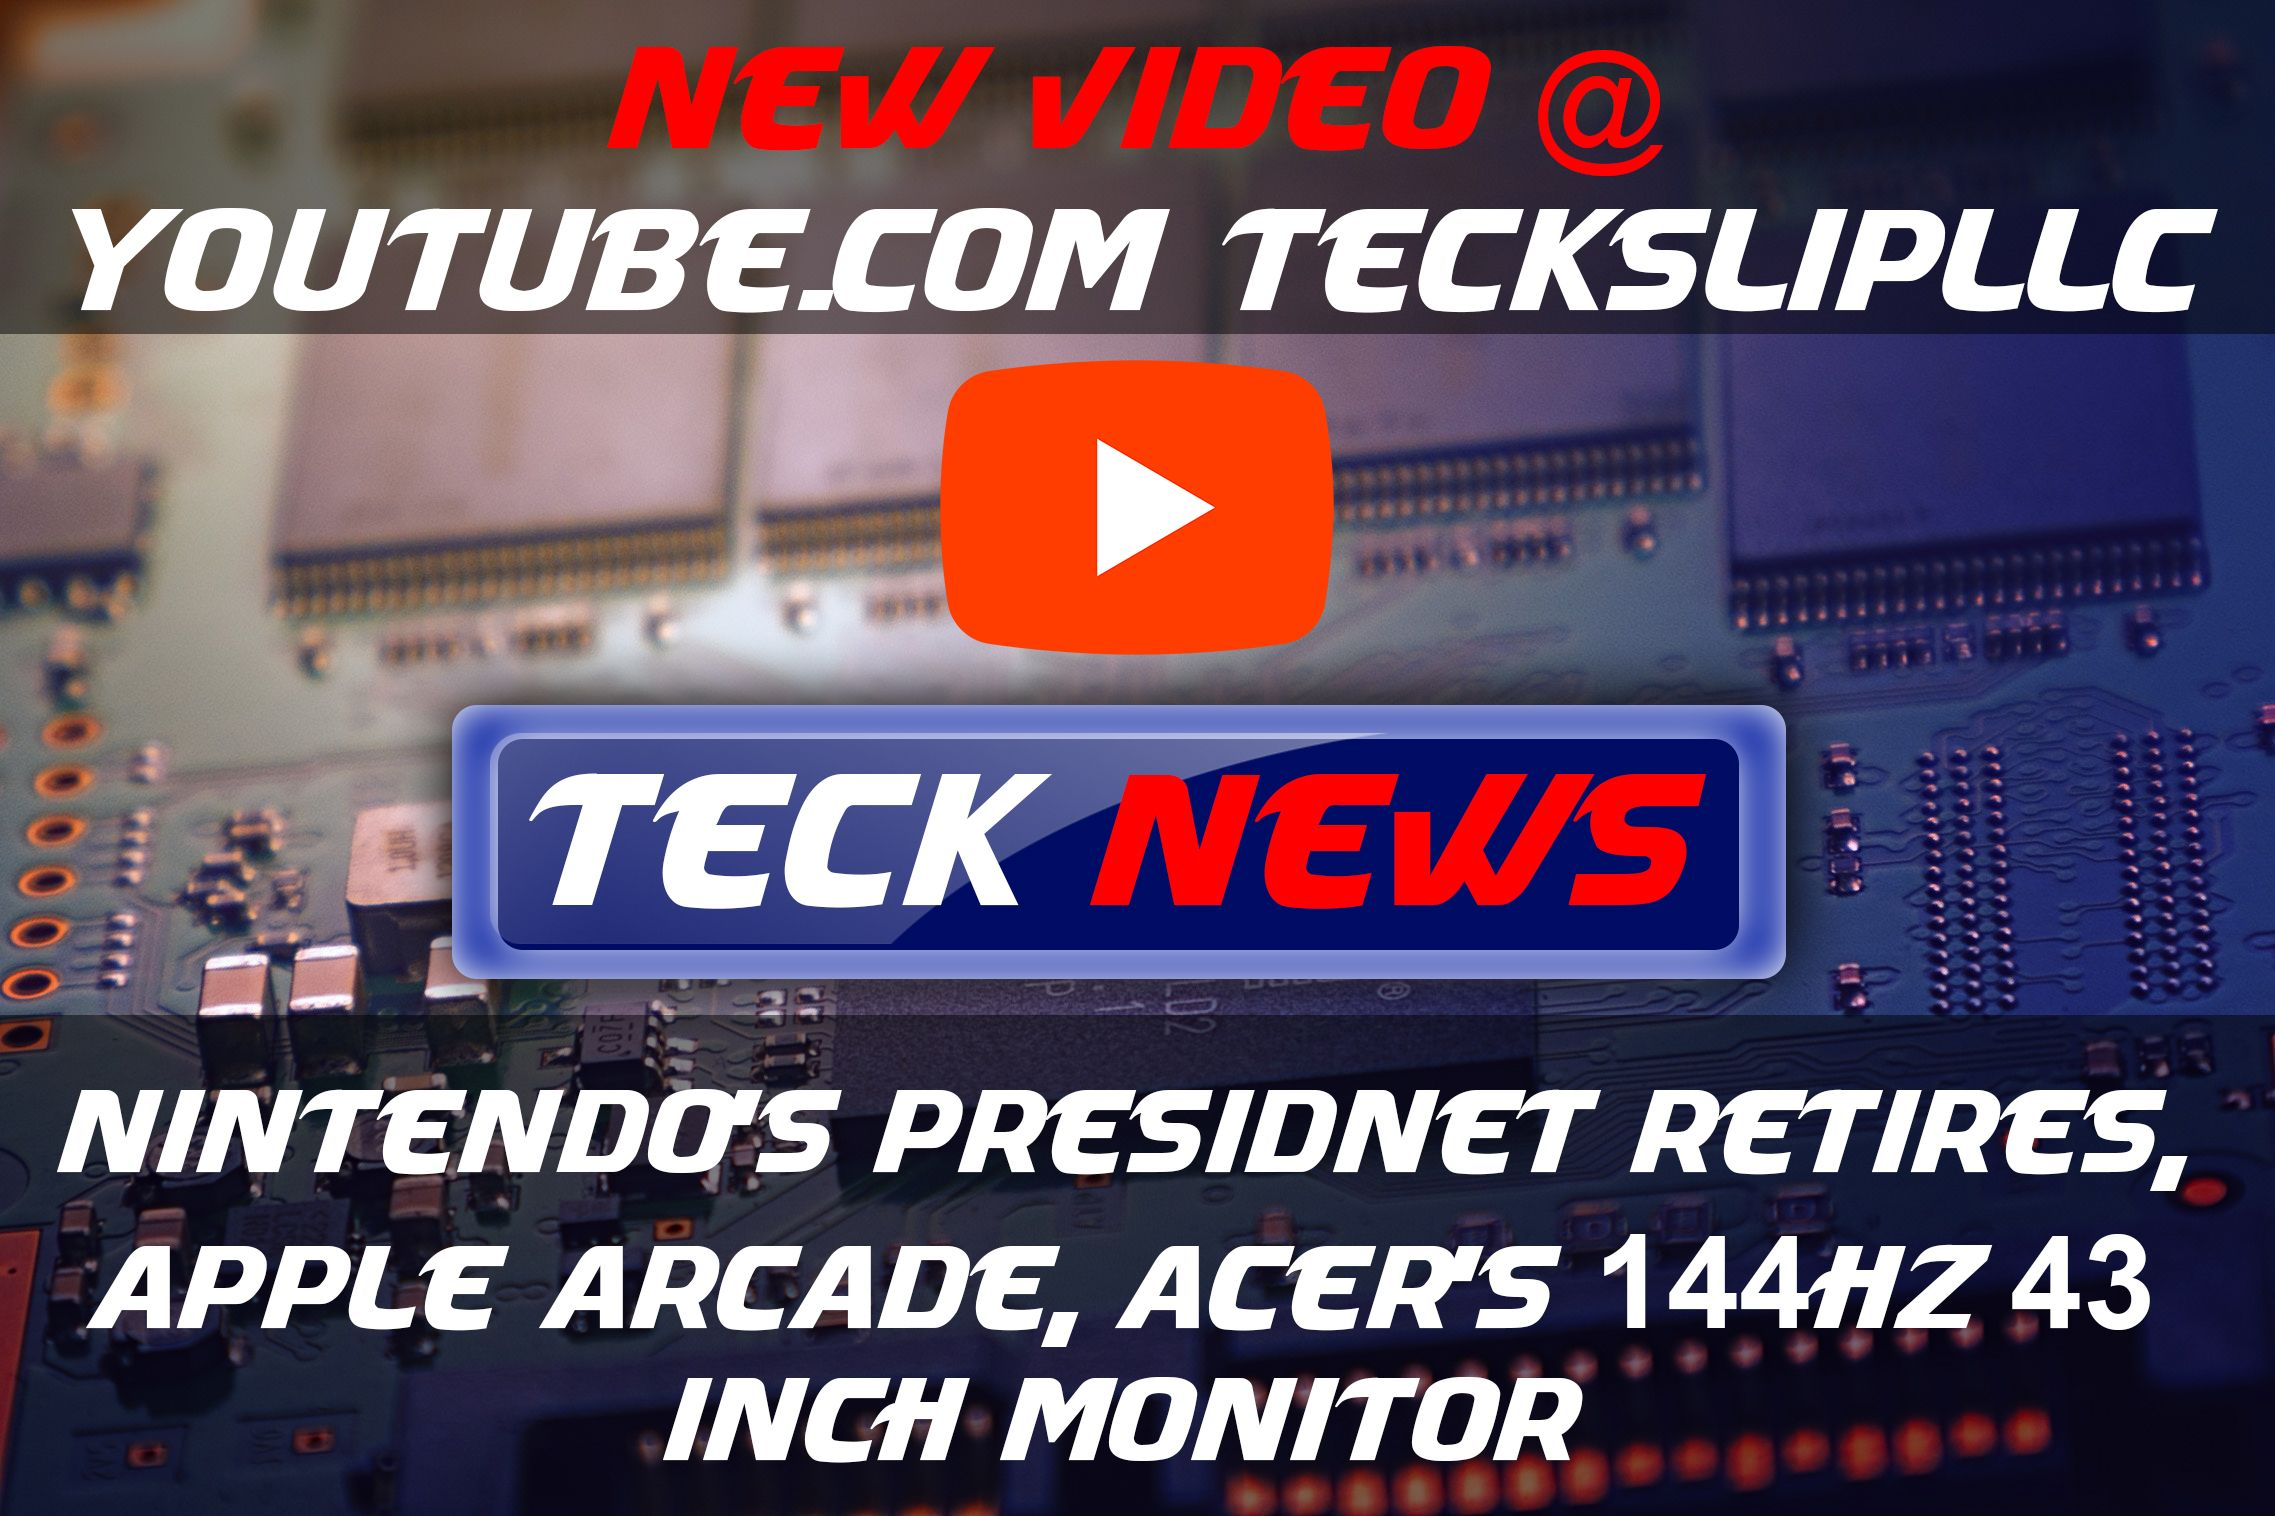 Checkout our newest Tech News Video on Youtube! Short sweet and to